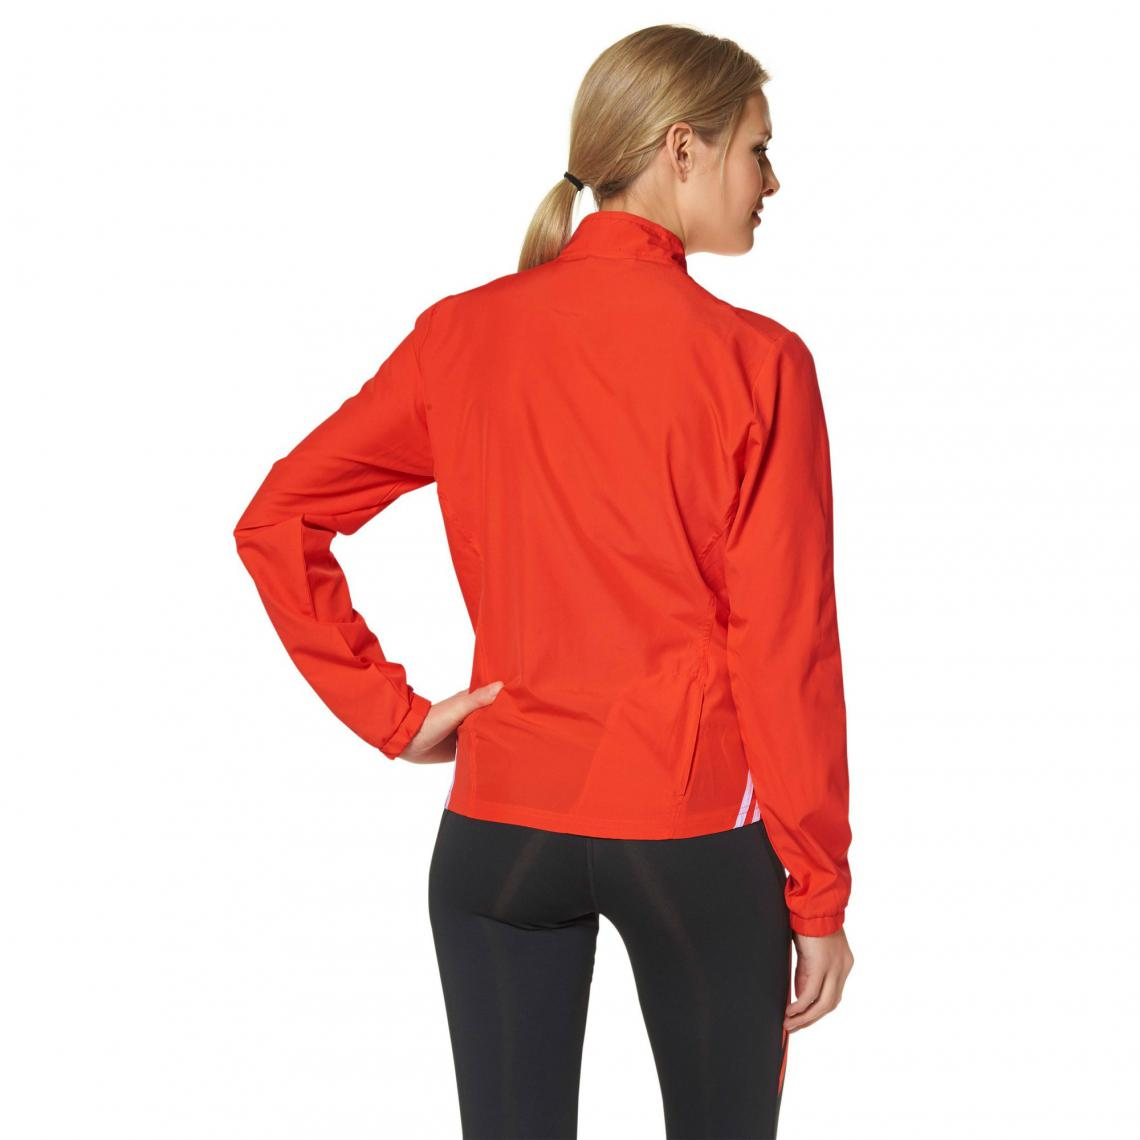 Veste running femme zippée Climalite adidas Performance Orange 1 Avis Plus de détails